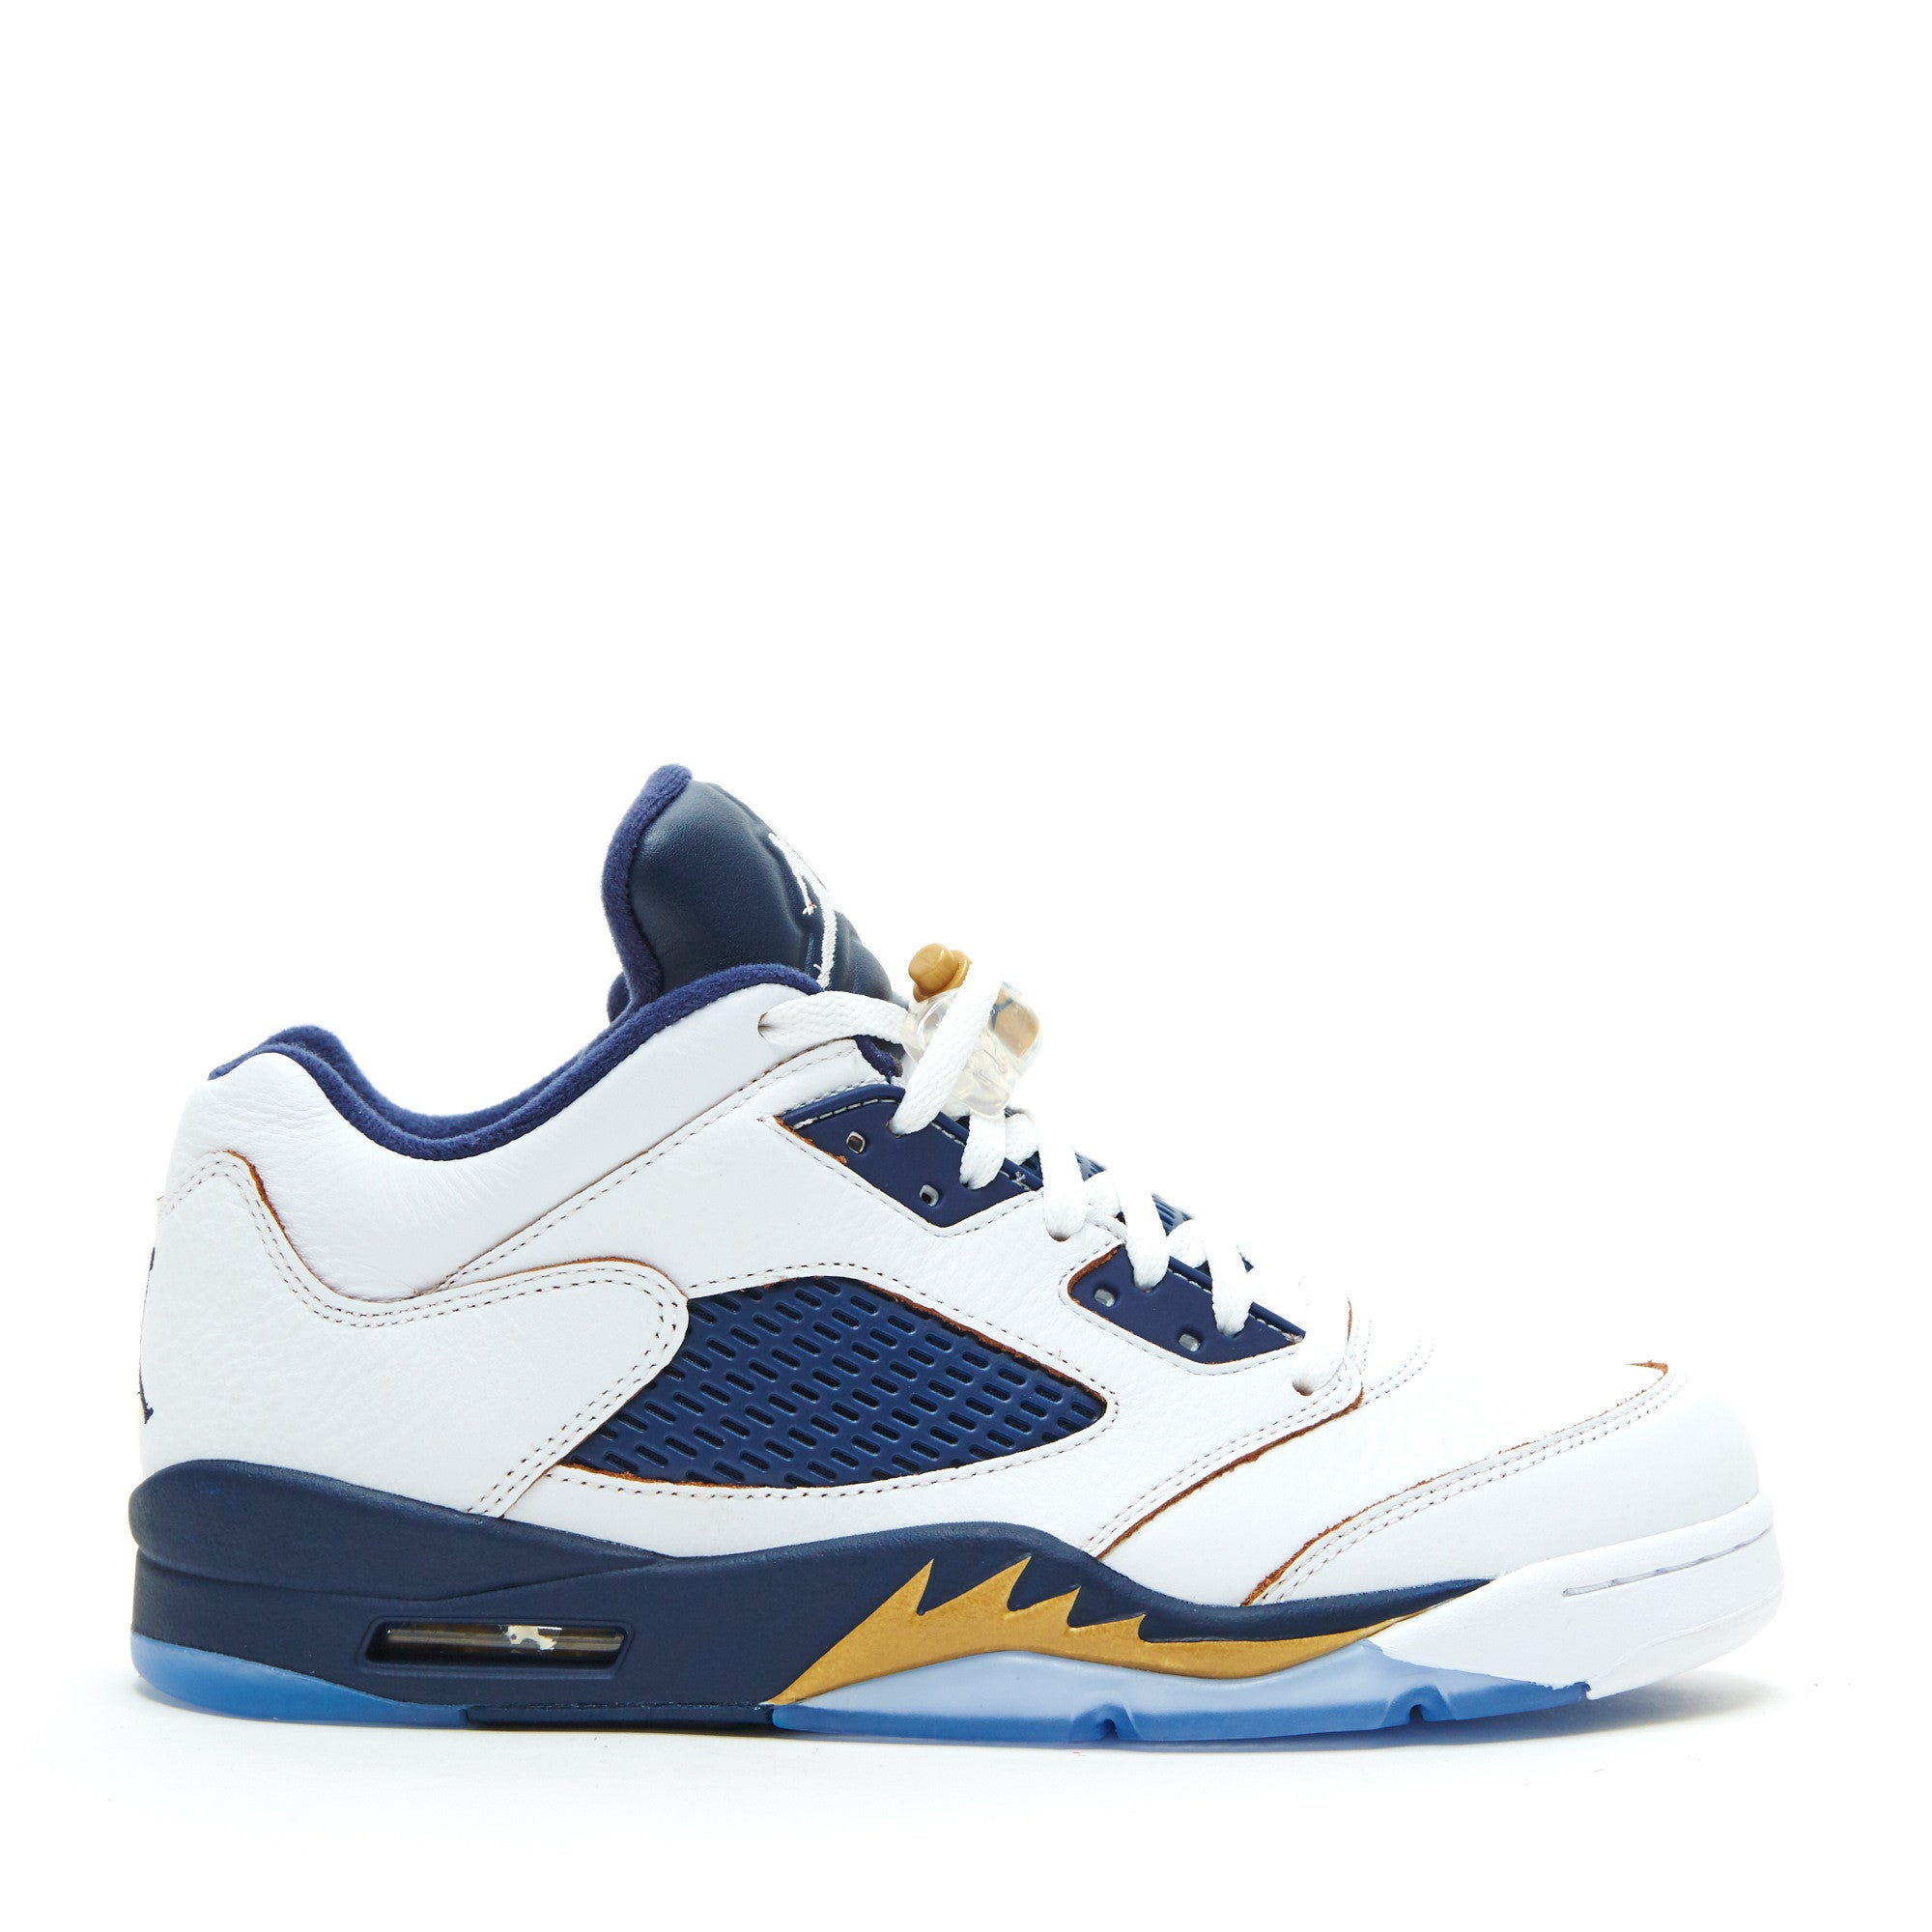 AIR JORDAN V RETRO LOW 'DUNK FROM ABOVE'